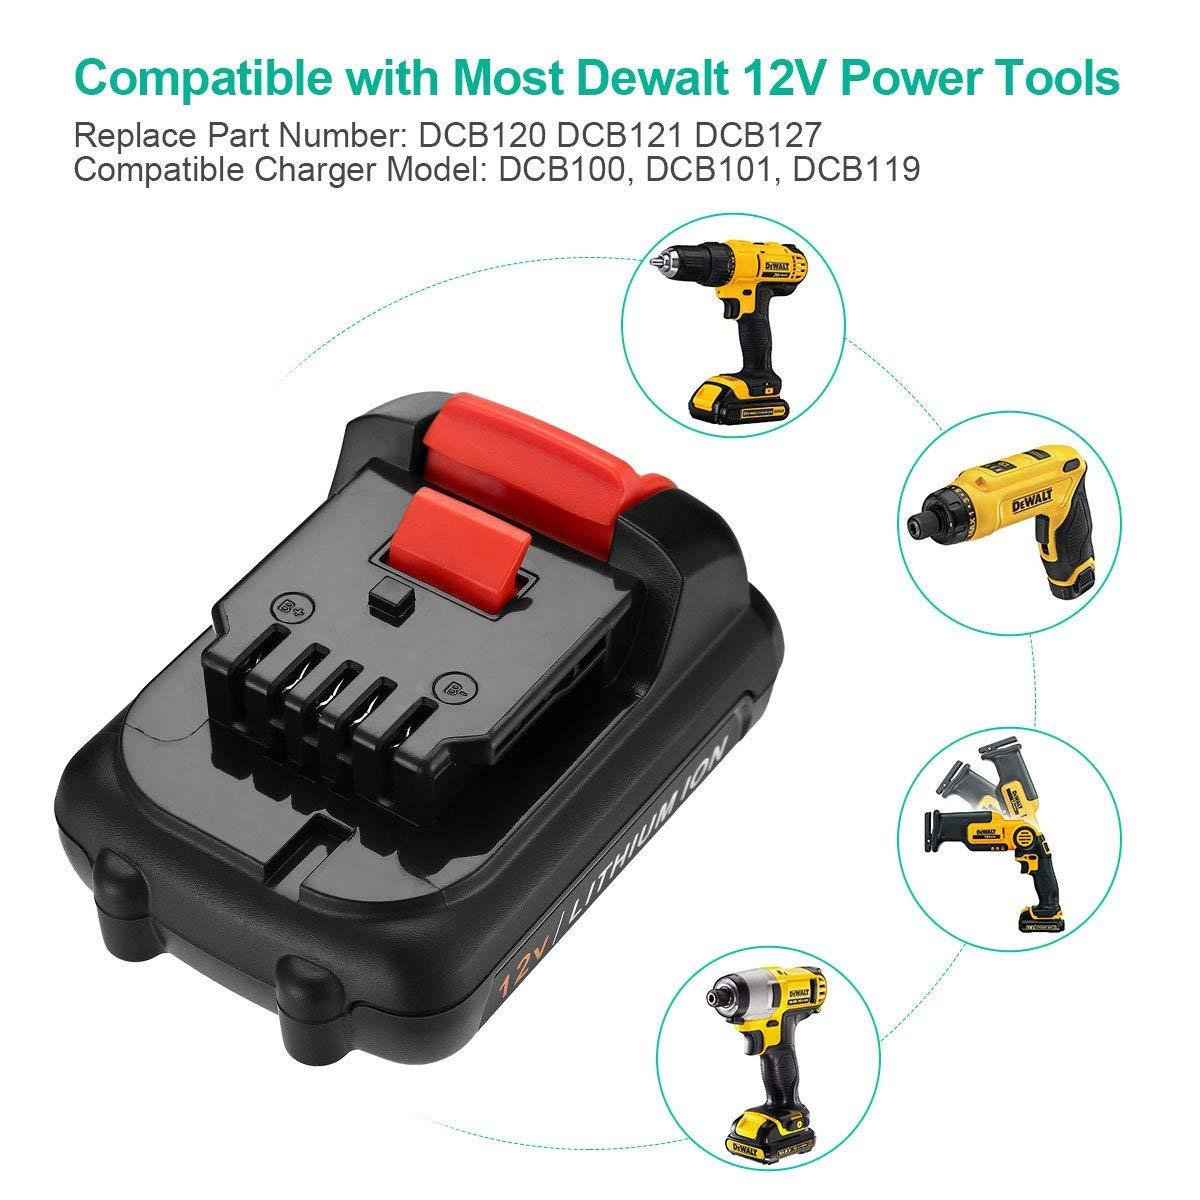 FirstPower 12V 4000mAh Replacement Lithium Battery for DeWalt DC